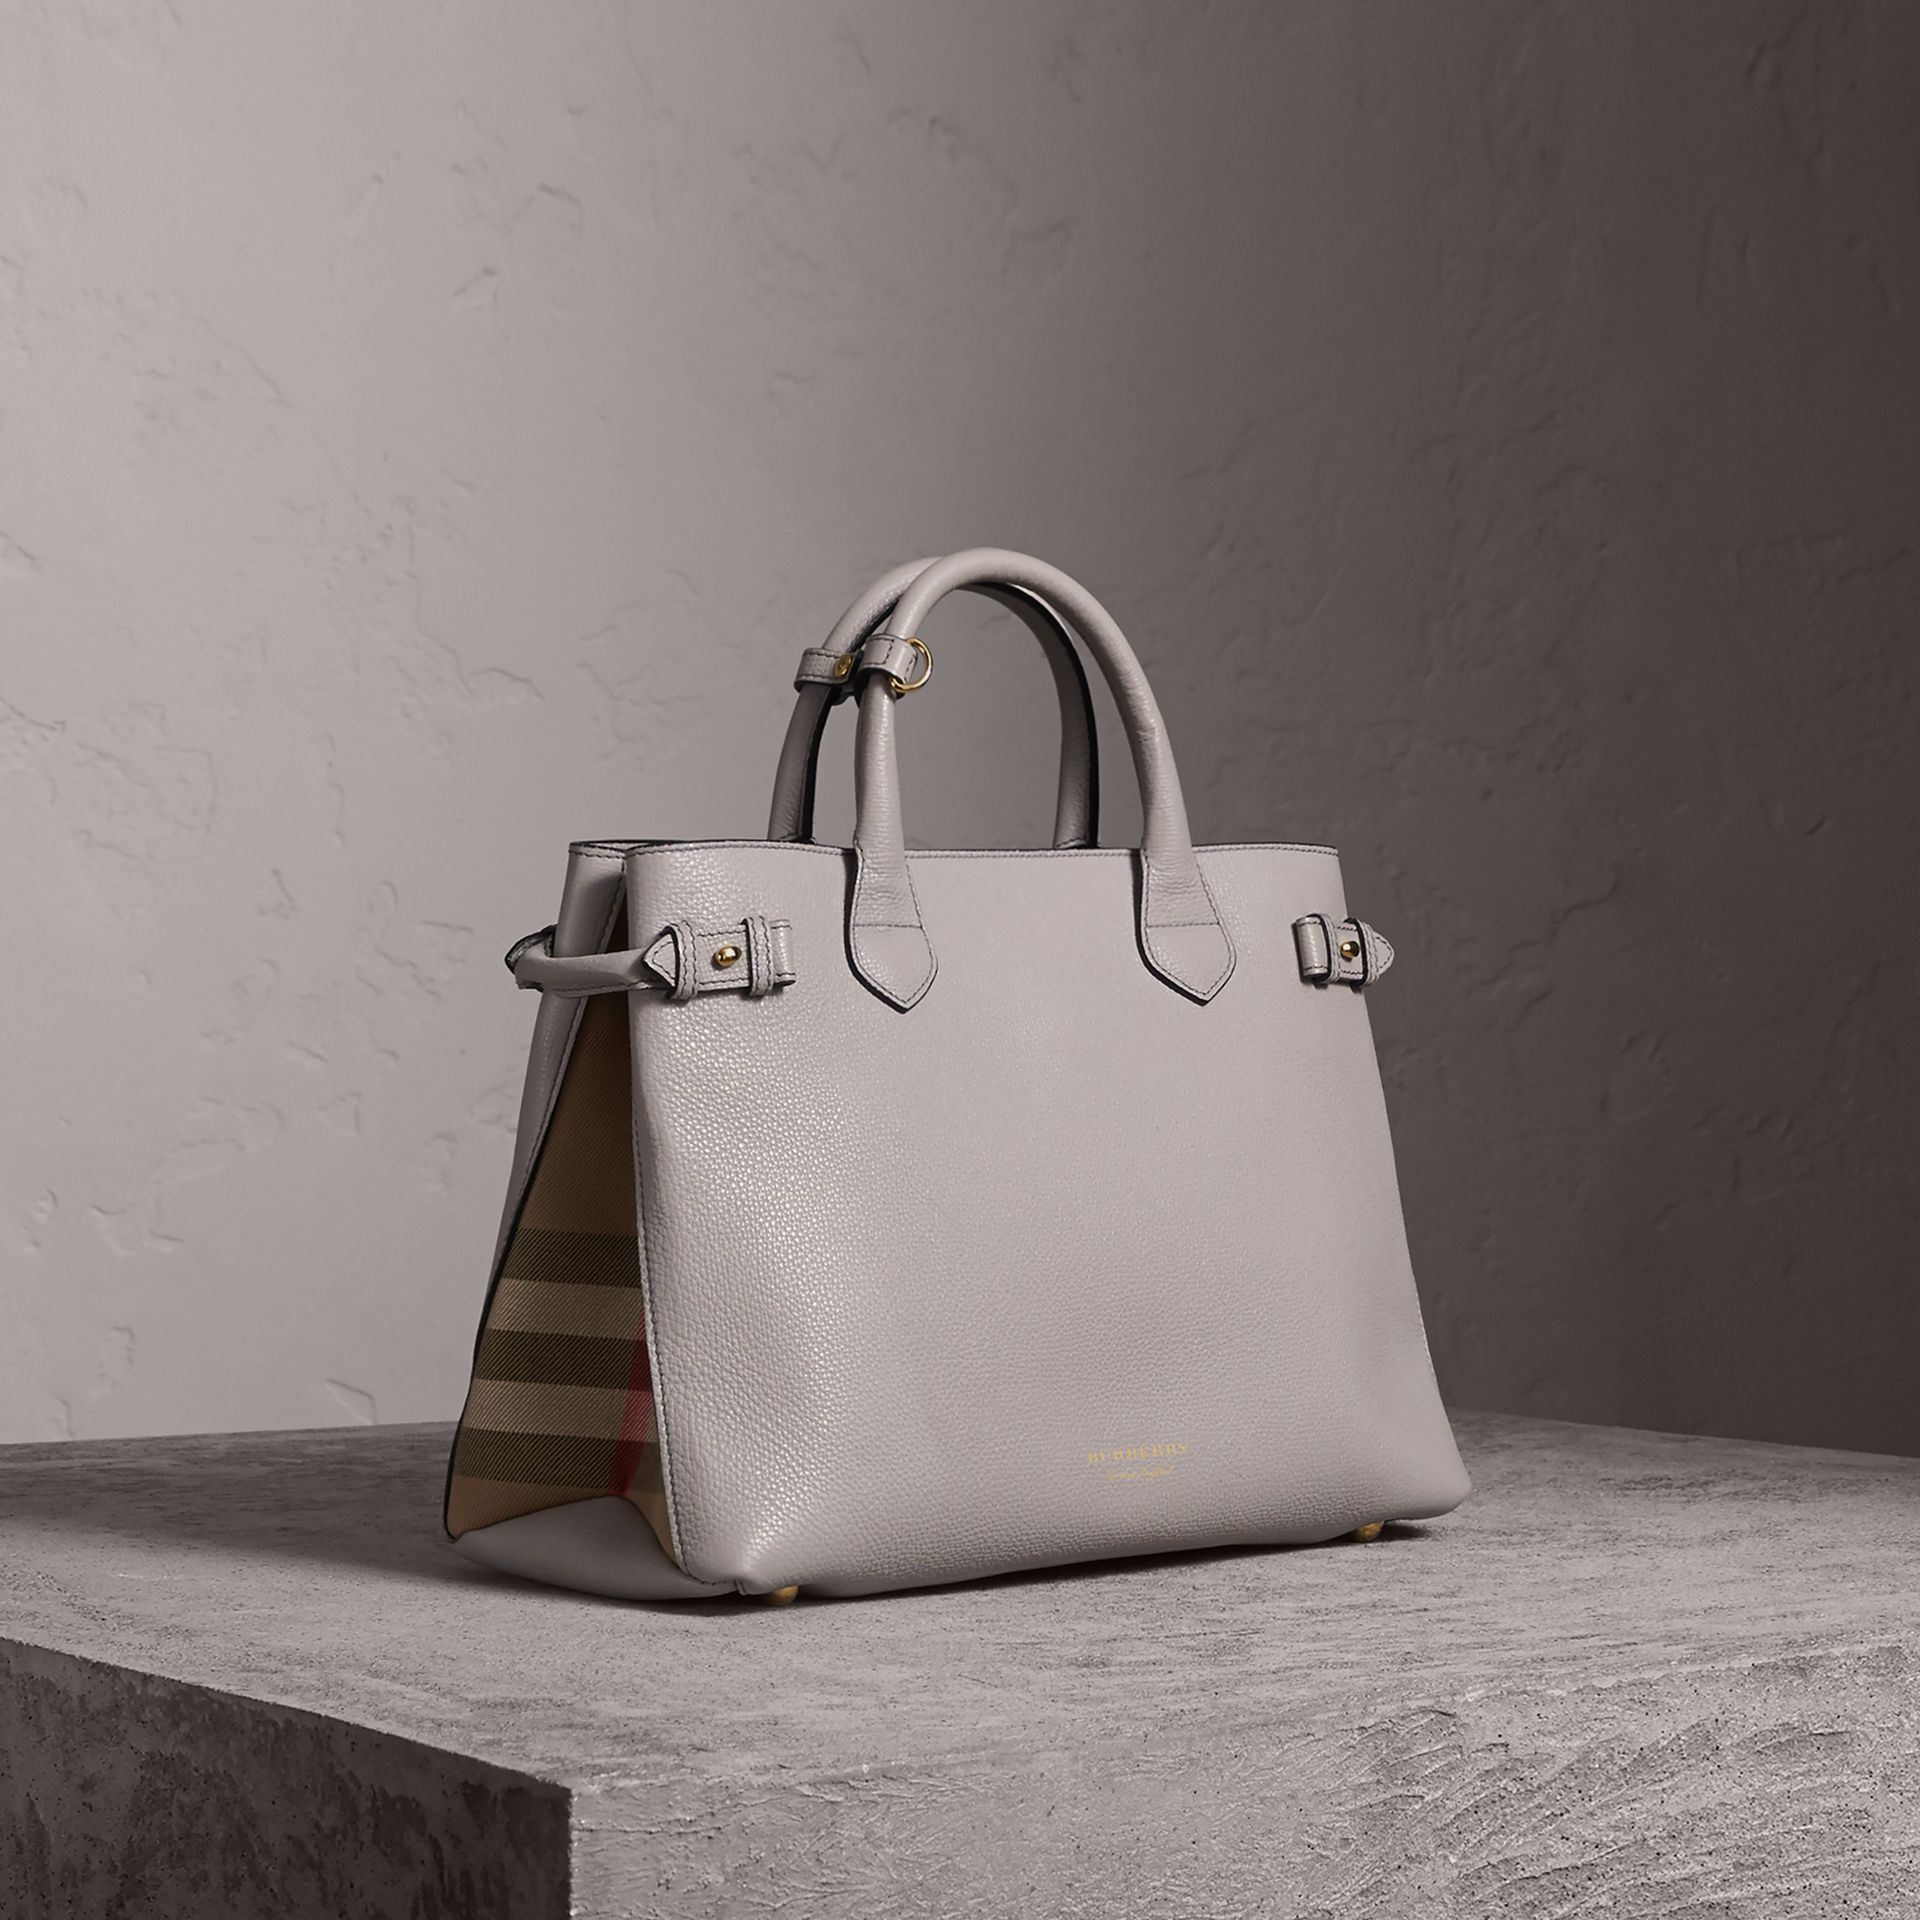 Sac The Banner medium en cuir et coton House check (Camaïeu De Gris Clairs) - Femme | Burberry - photo de la galerie 0